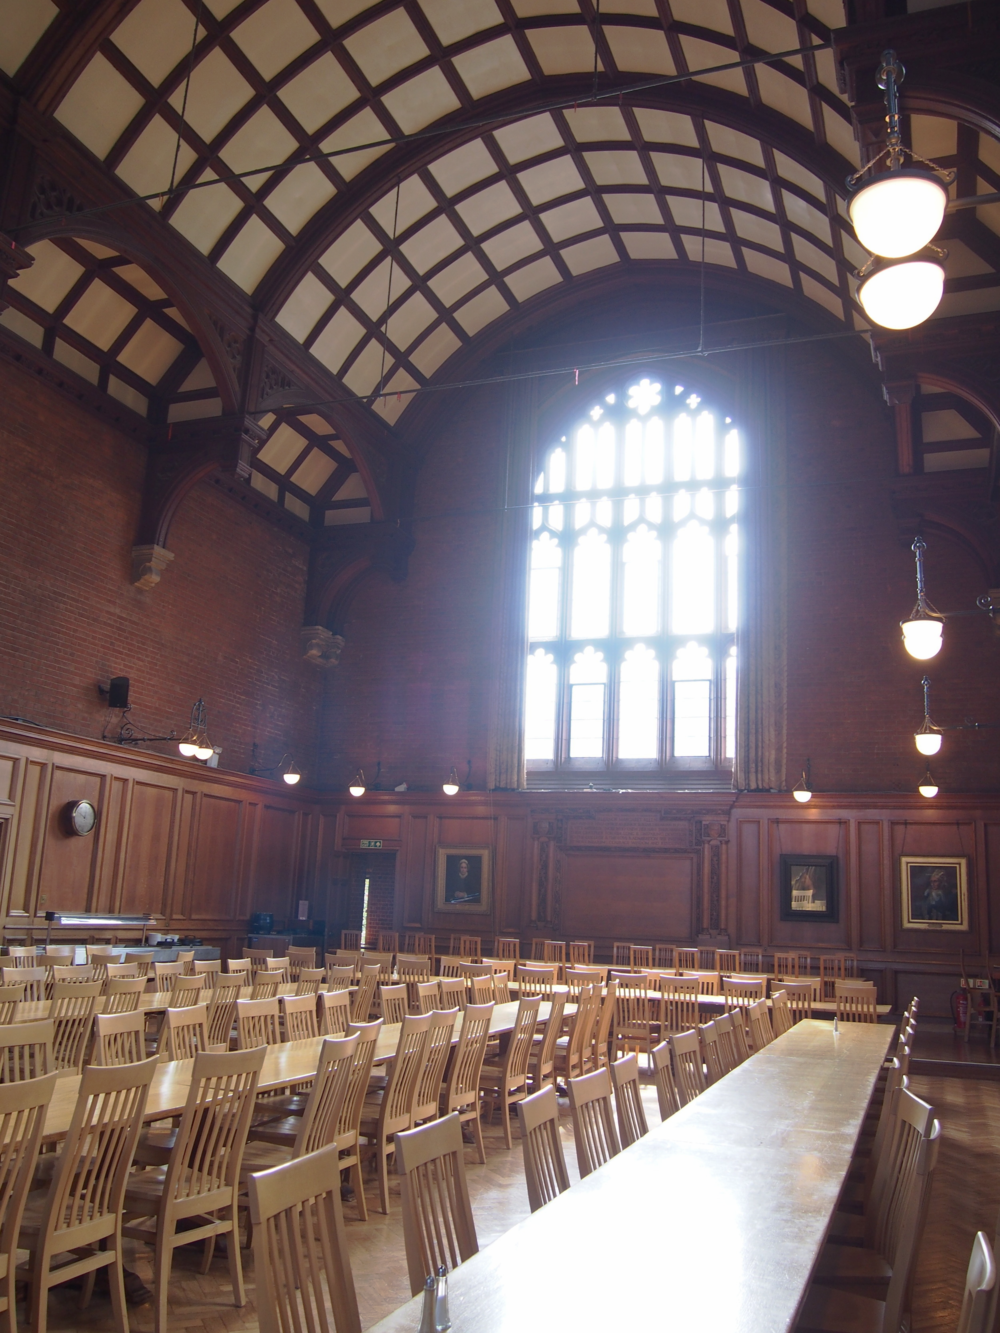 Girton Dining Hall